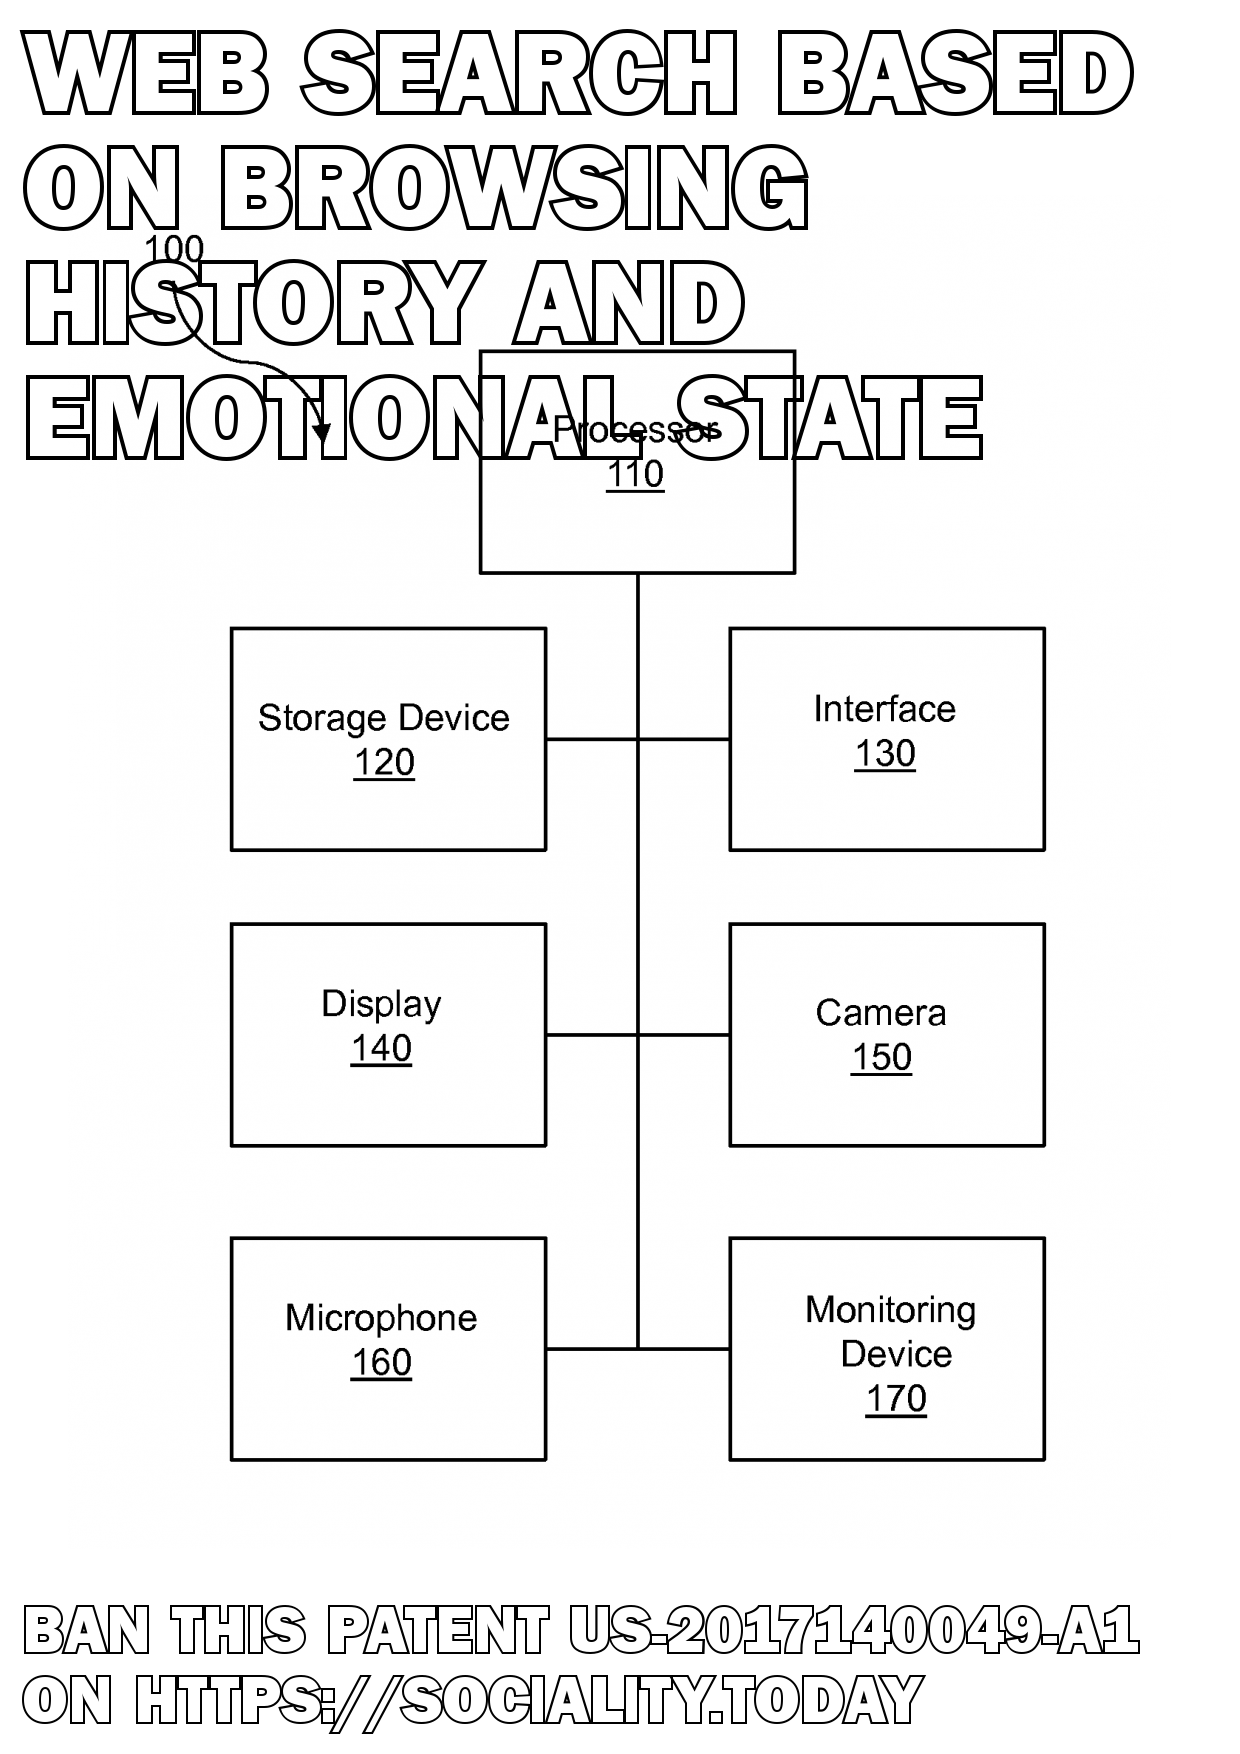 Web search based on browsing history and emotional state  - US-2017140049-A1